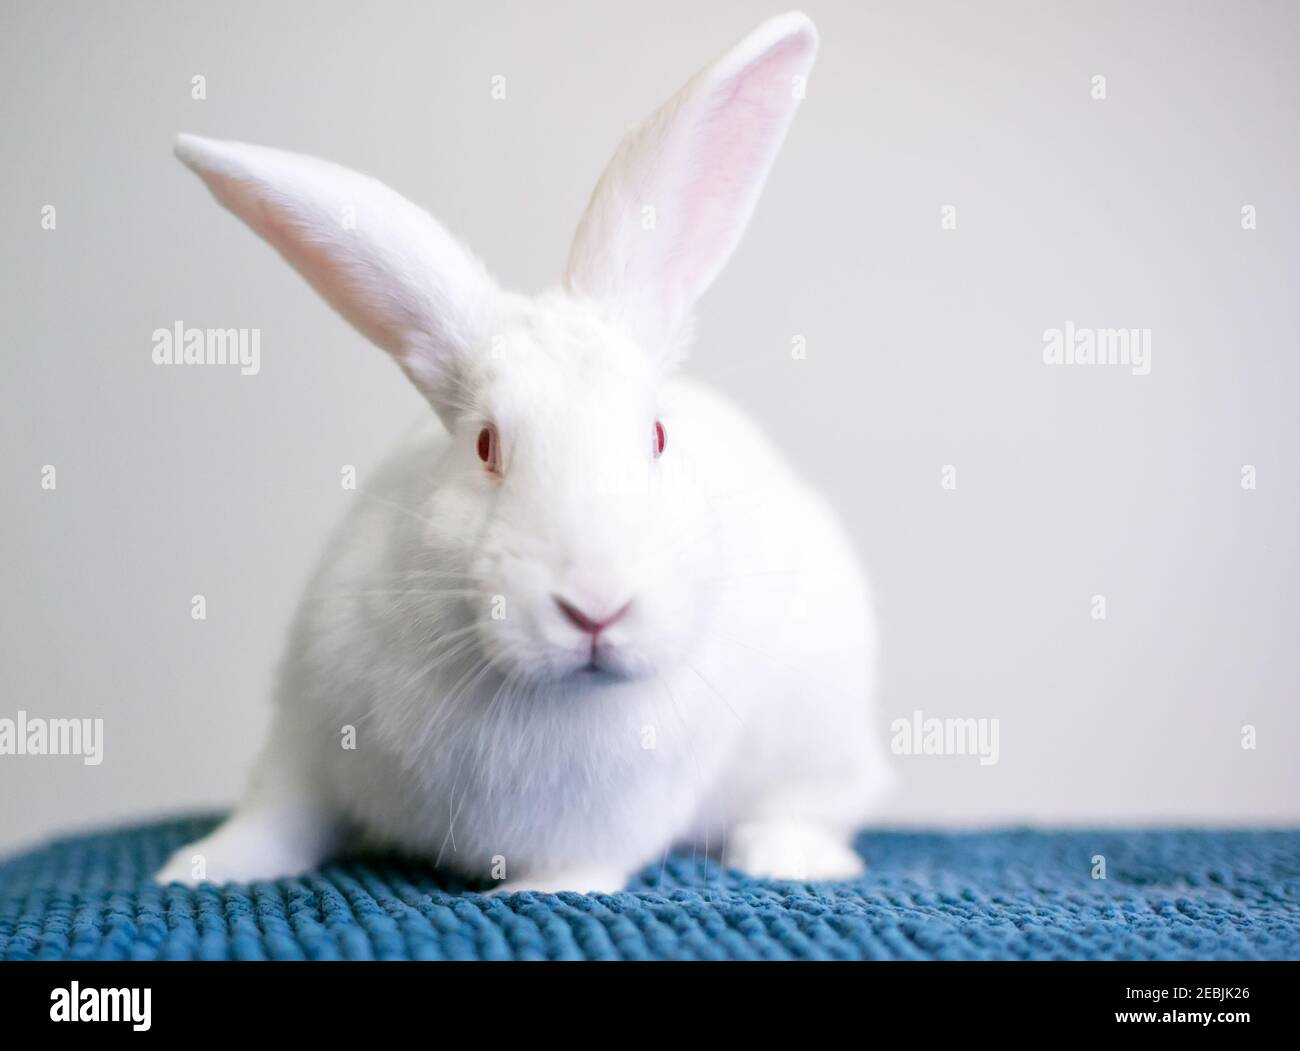 White Rabbit Pink Eyes High Resolution Stock Photography and ...